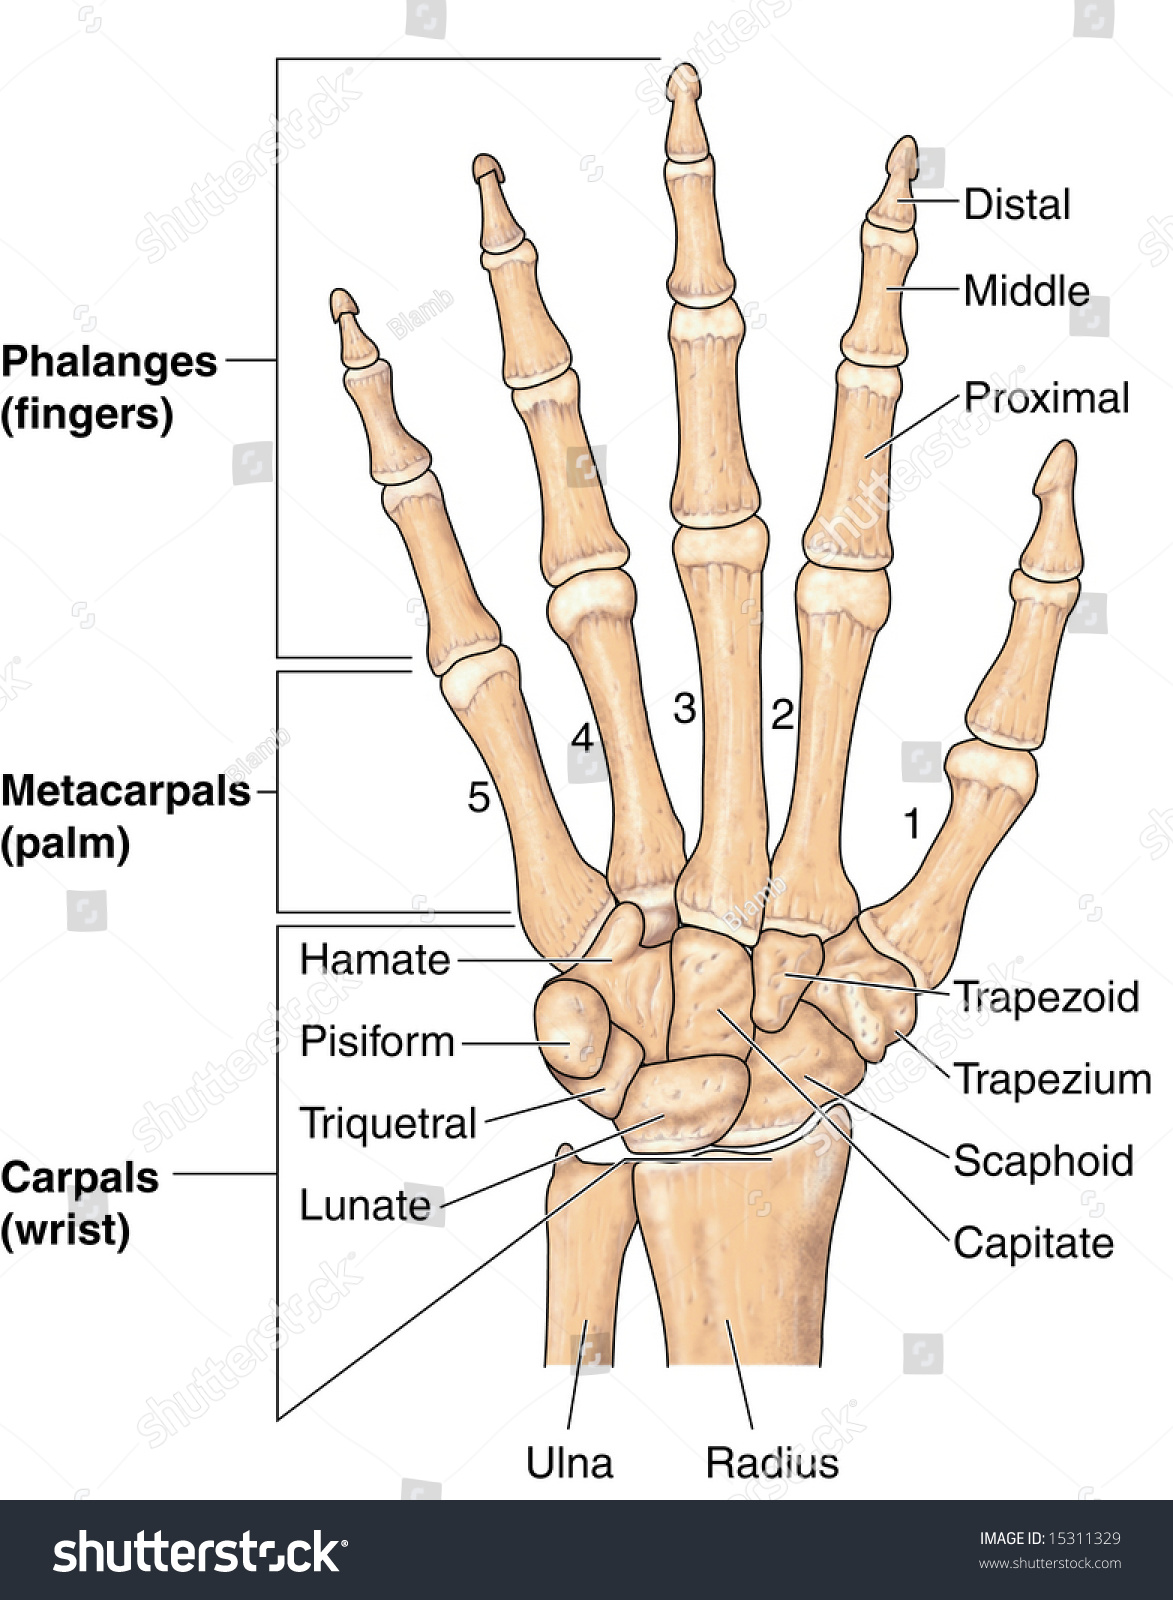 Human Hand Bones Labeled Stock Photo